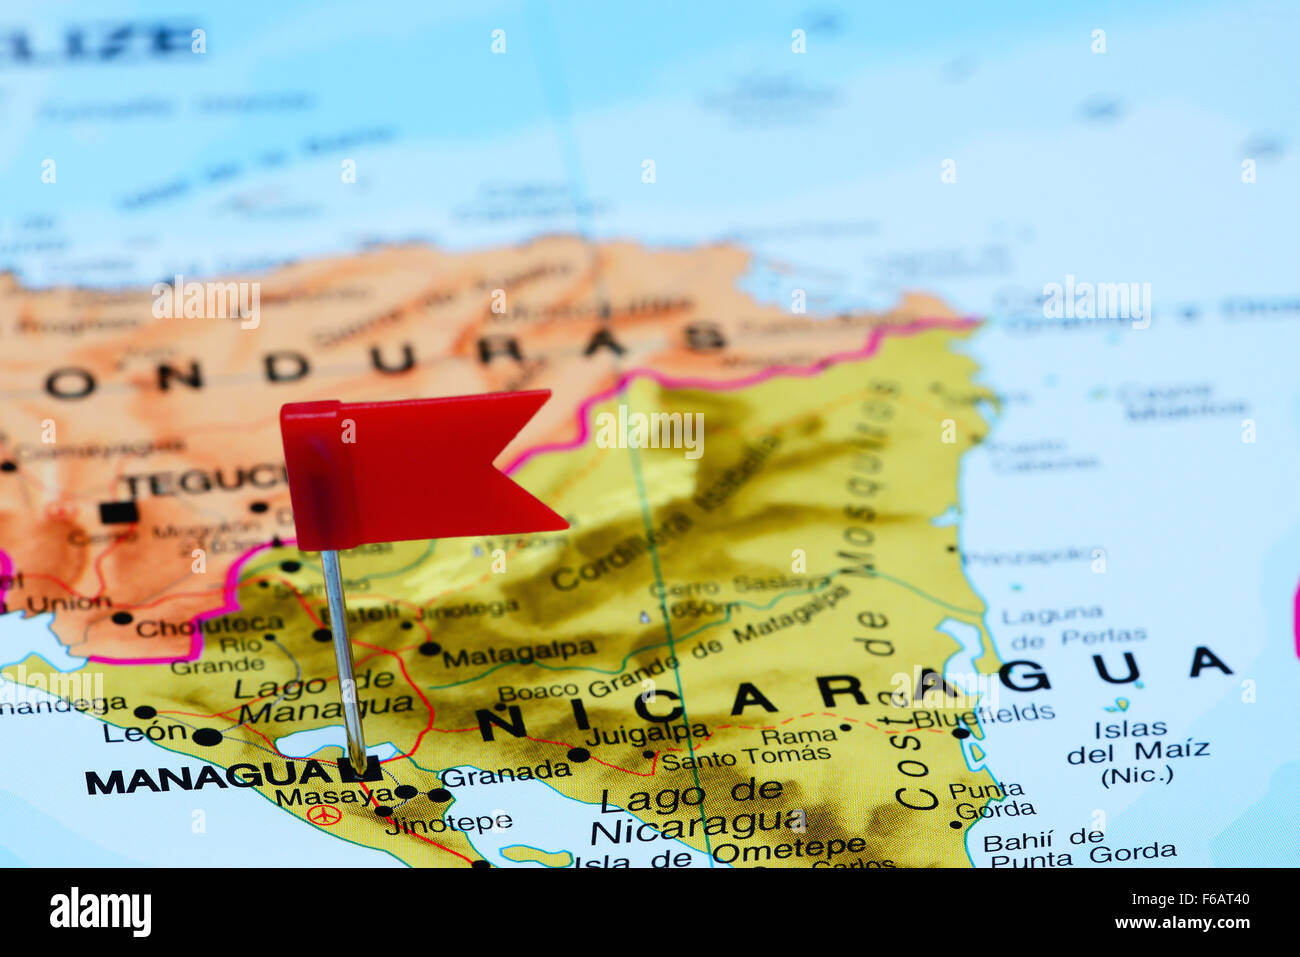 Managua pinned on a map of America Stock Photo Royalty Free Image